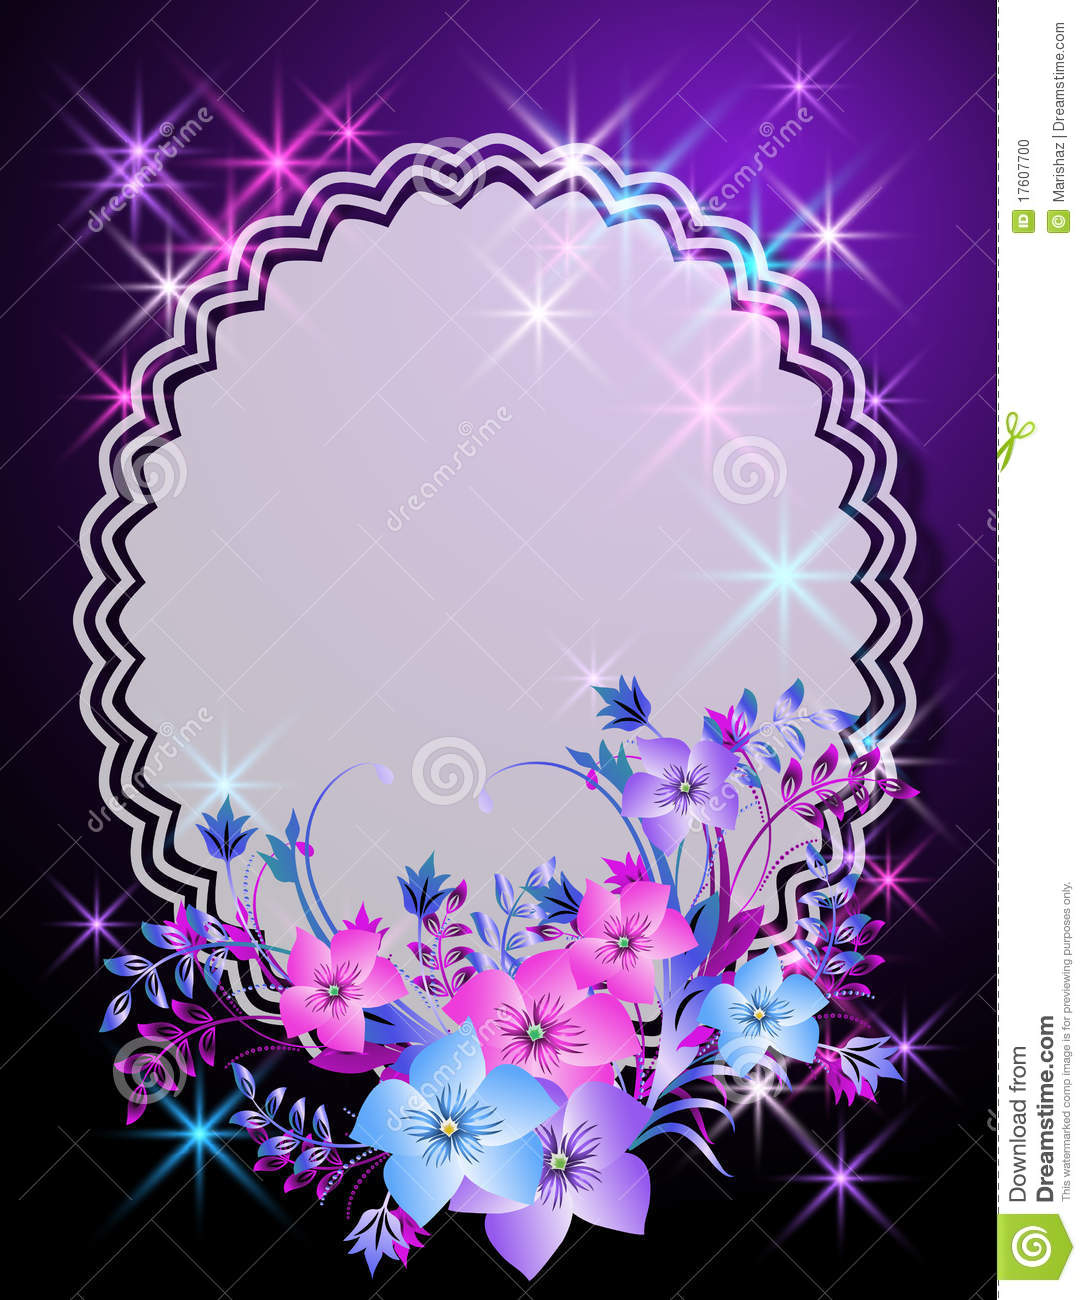 Magic Background With Flowers And Napkin Stock Photo